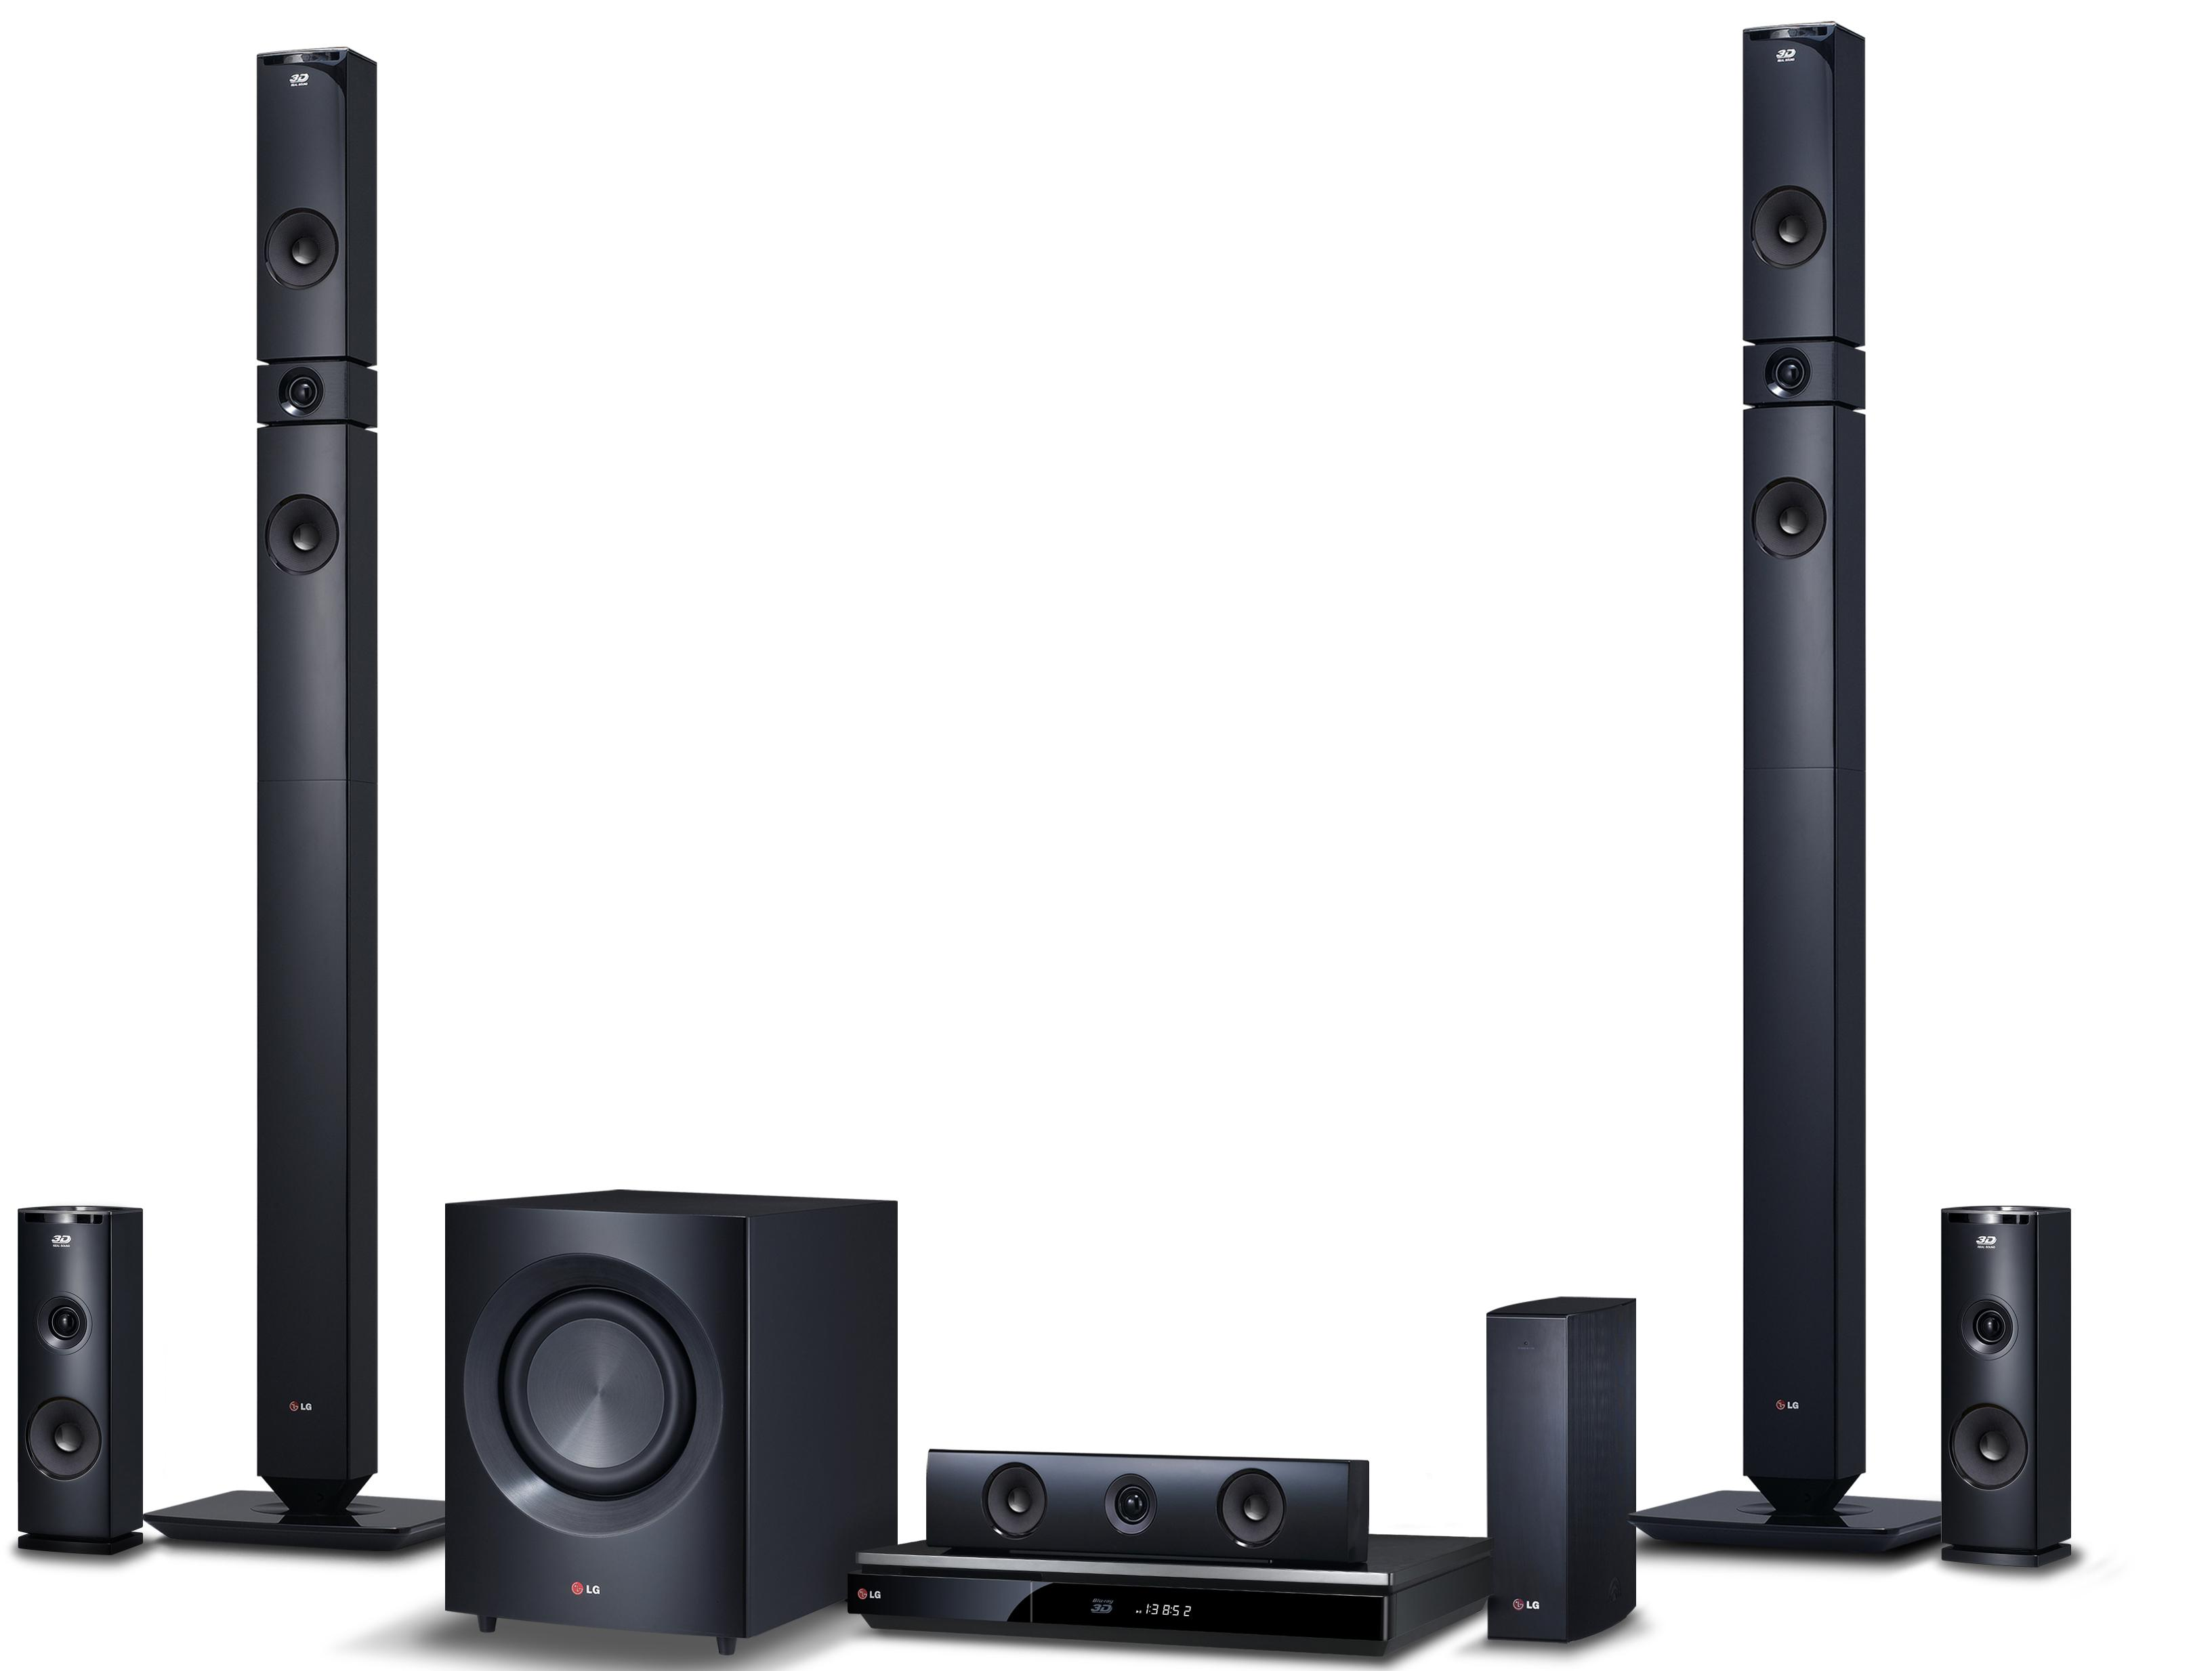 LG Electronics Home Theater 9.1 Channel Home Theater System - Item Number: BH9431PW